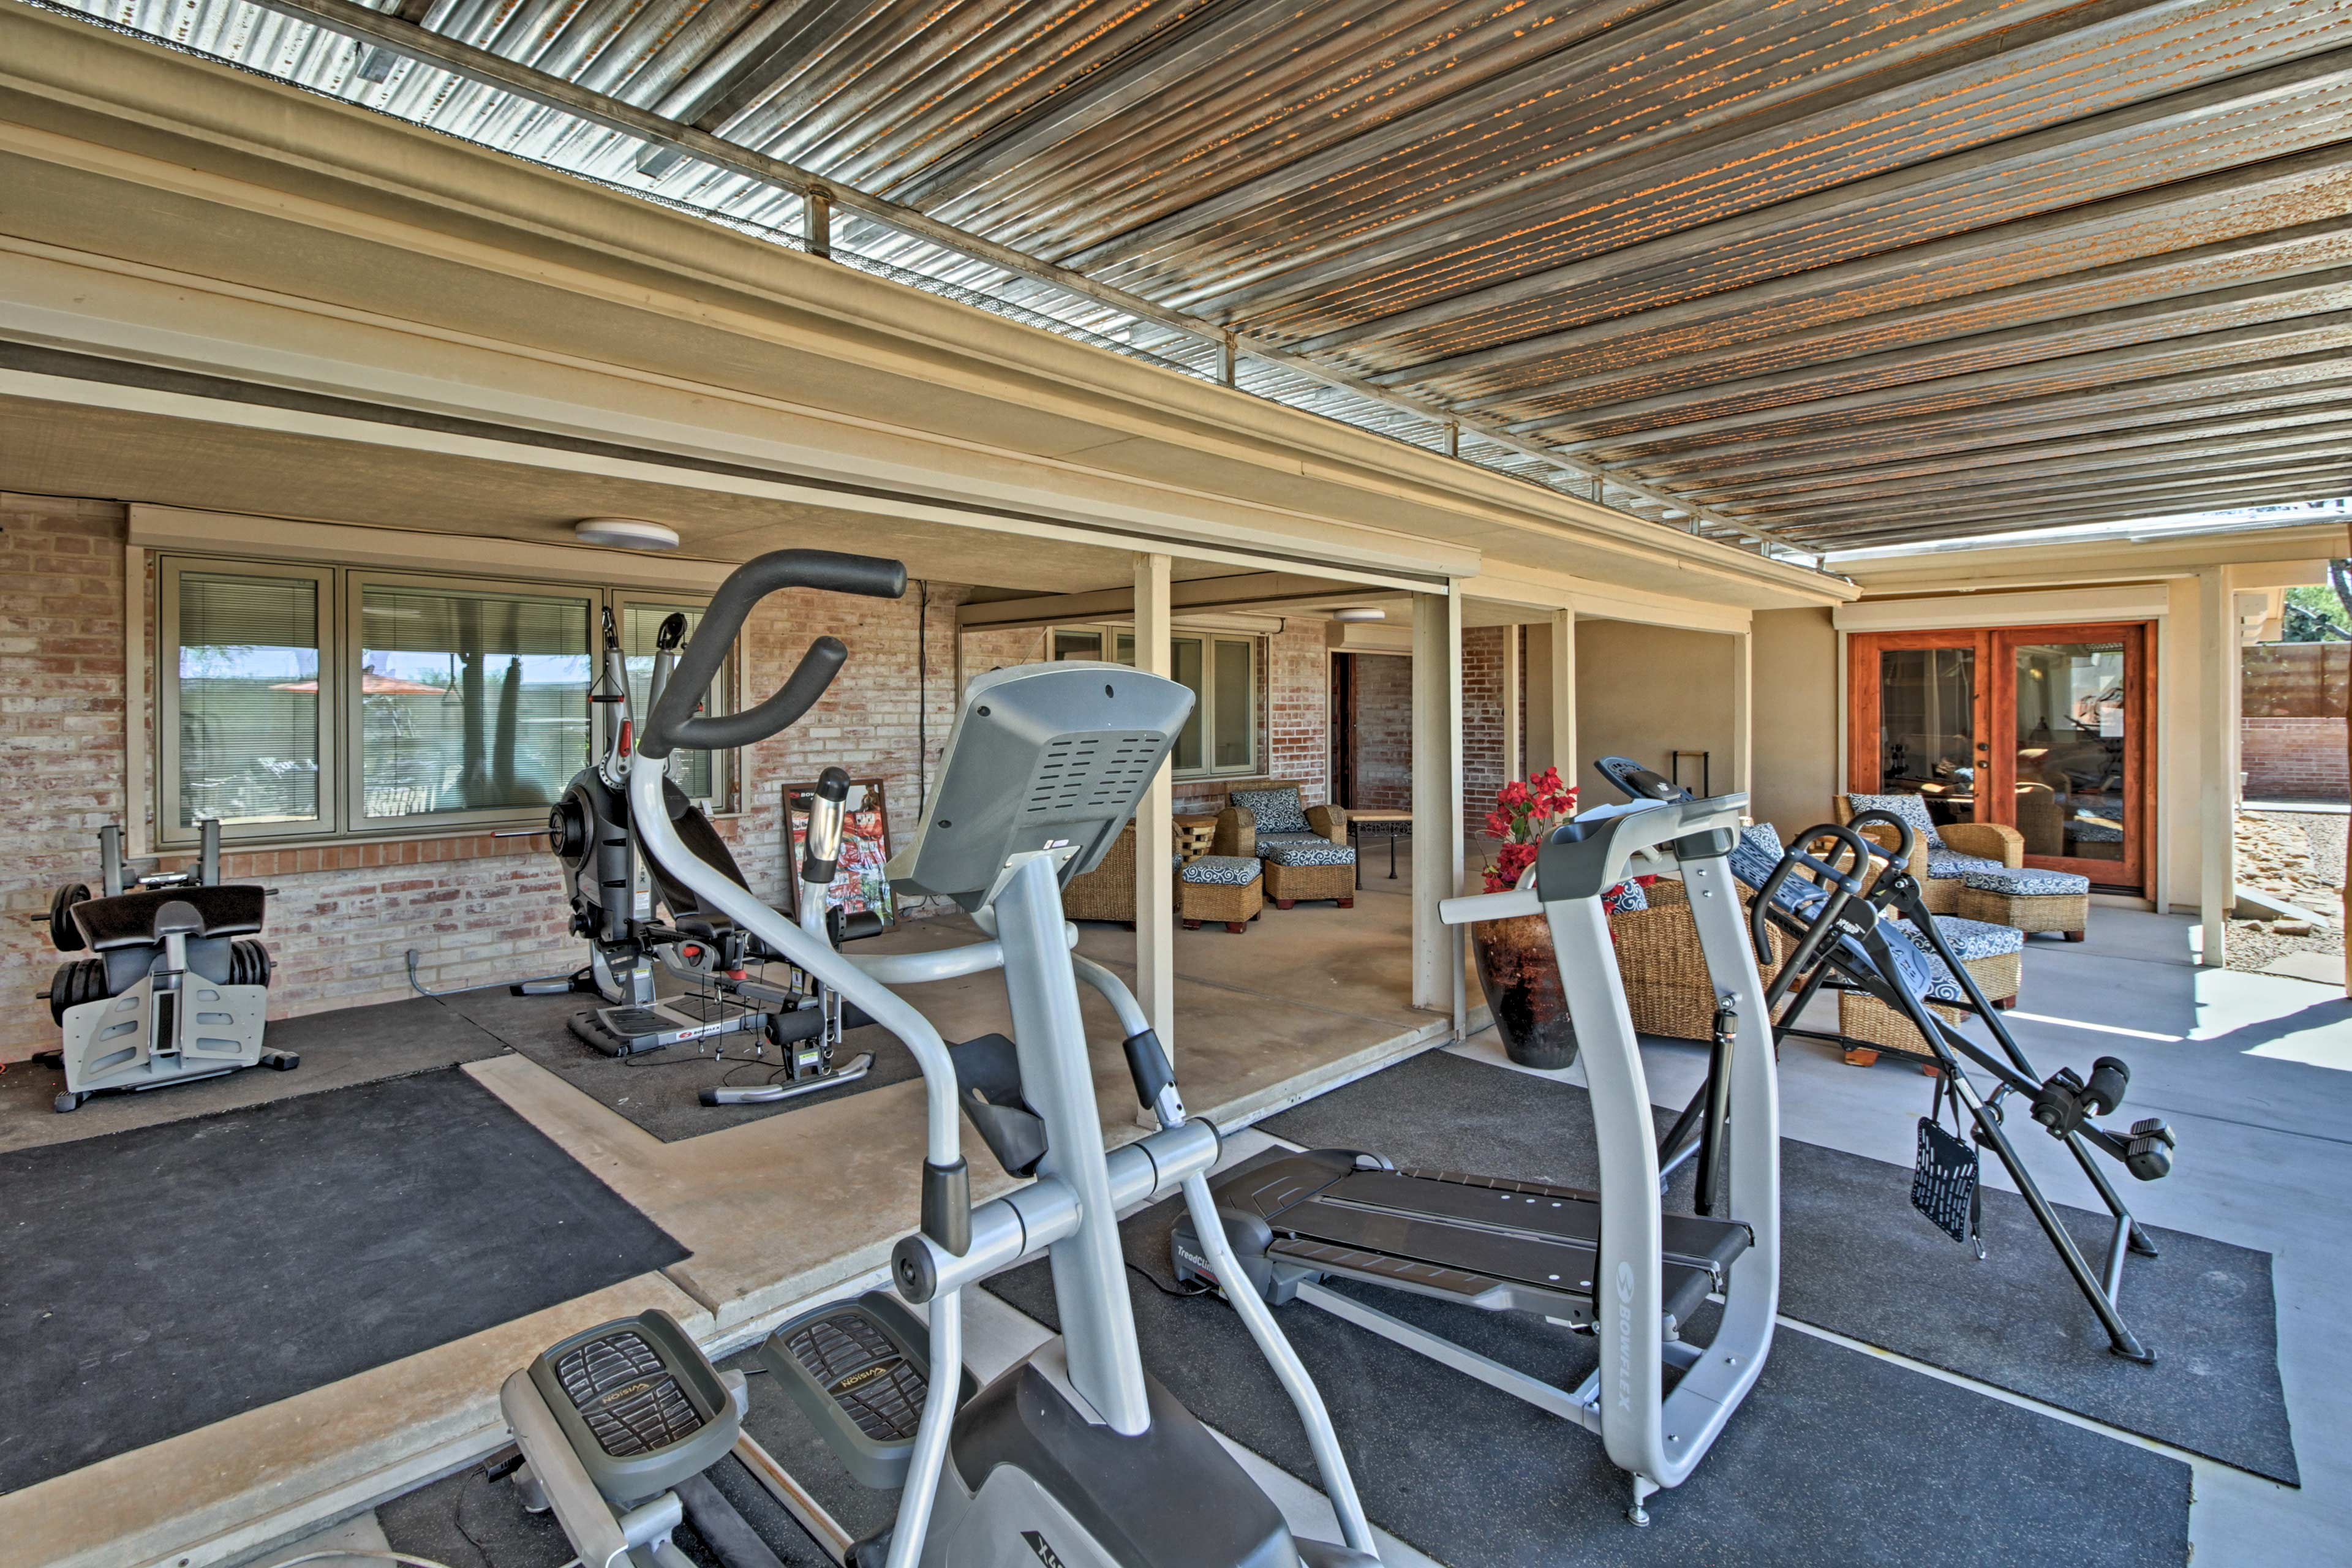 A variety of workout equipment makes it easy to stay fit.